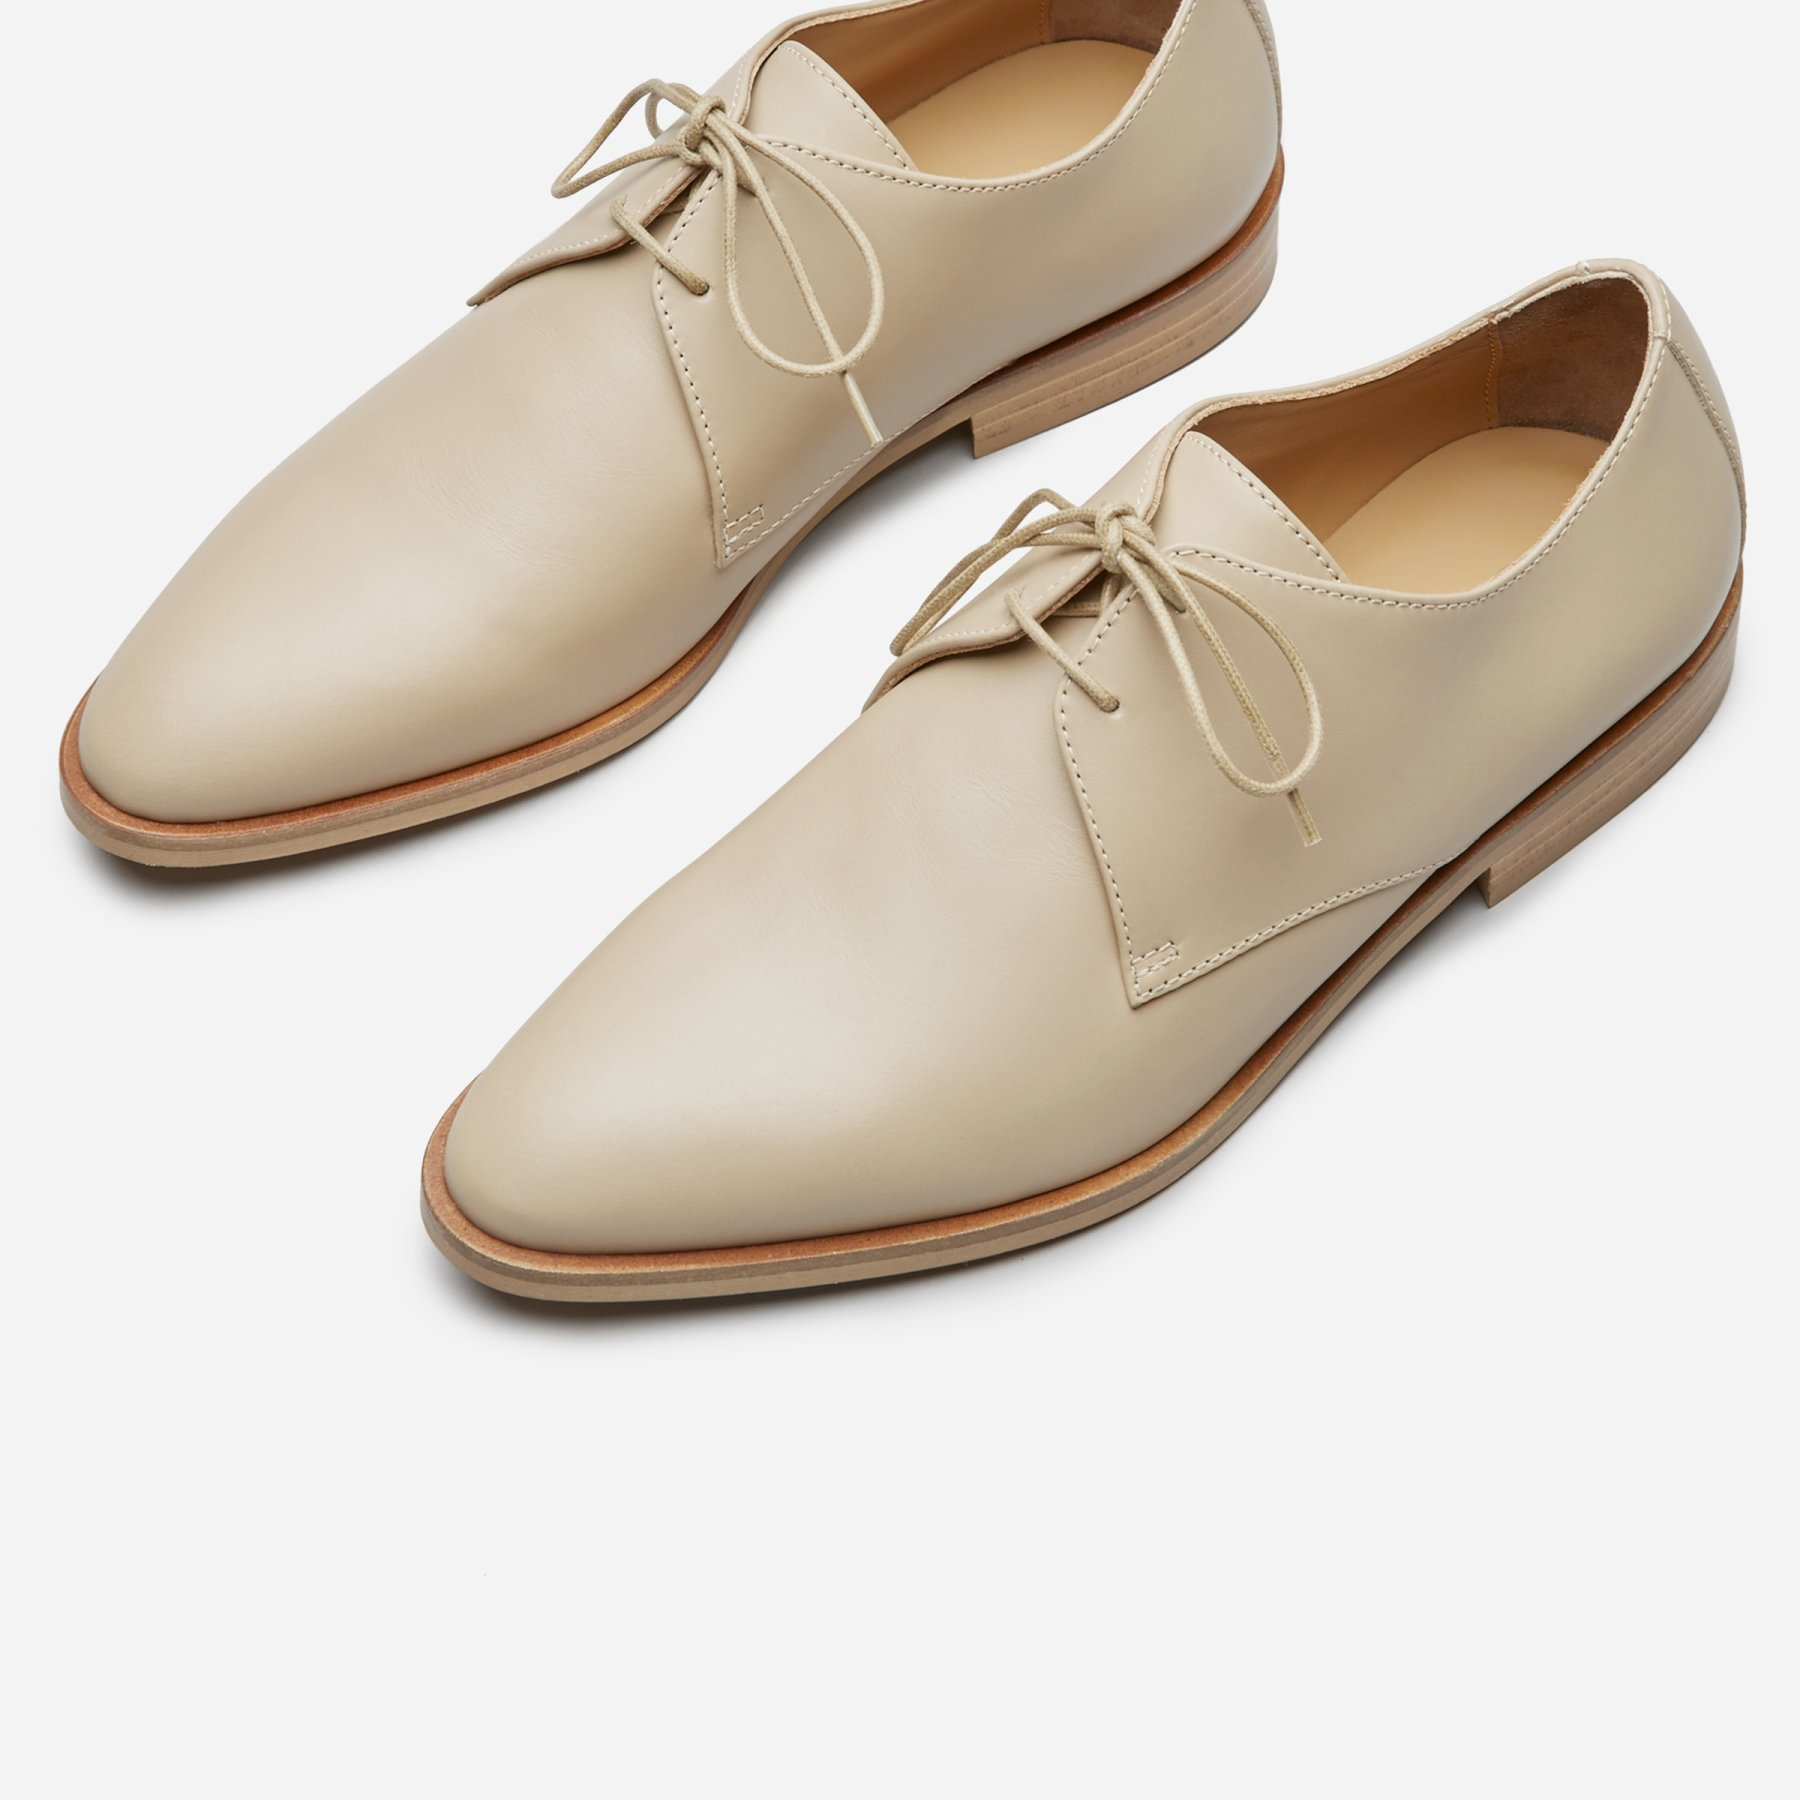 The Modern Oxford – $168 ( $143 sale)